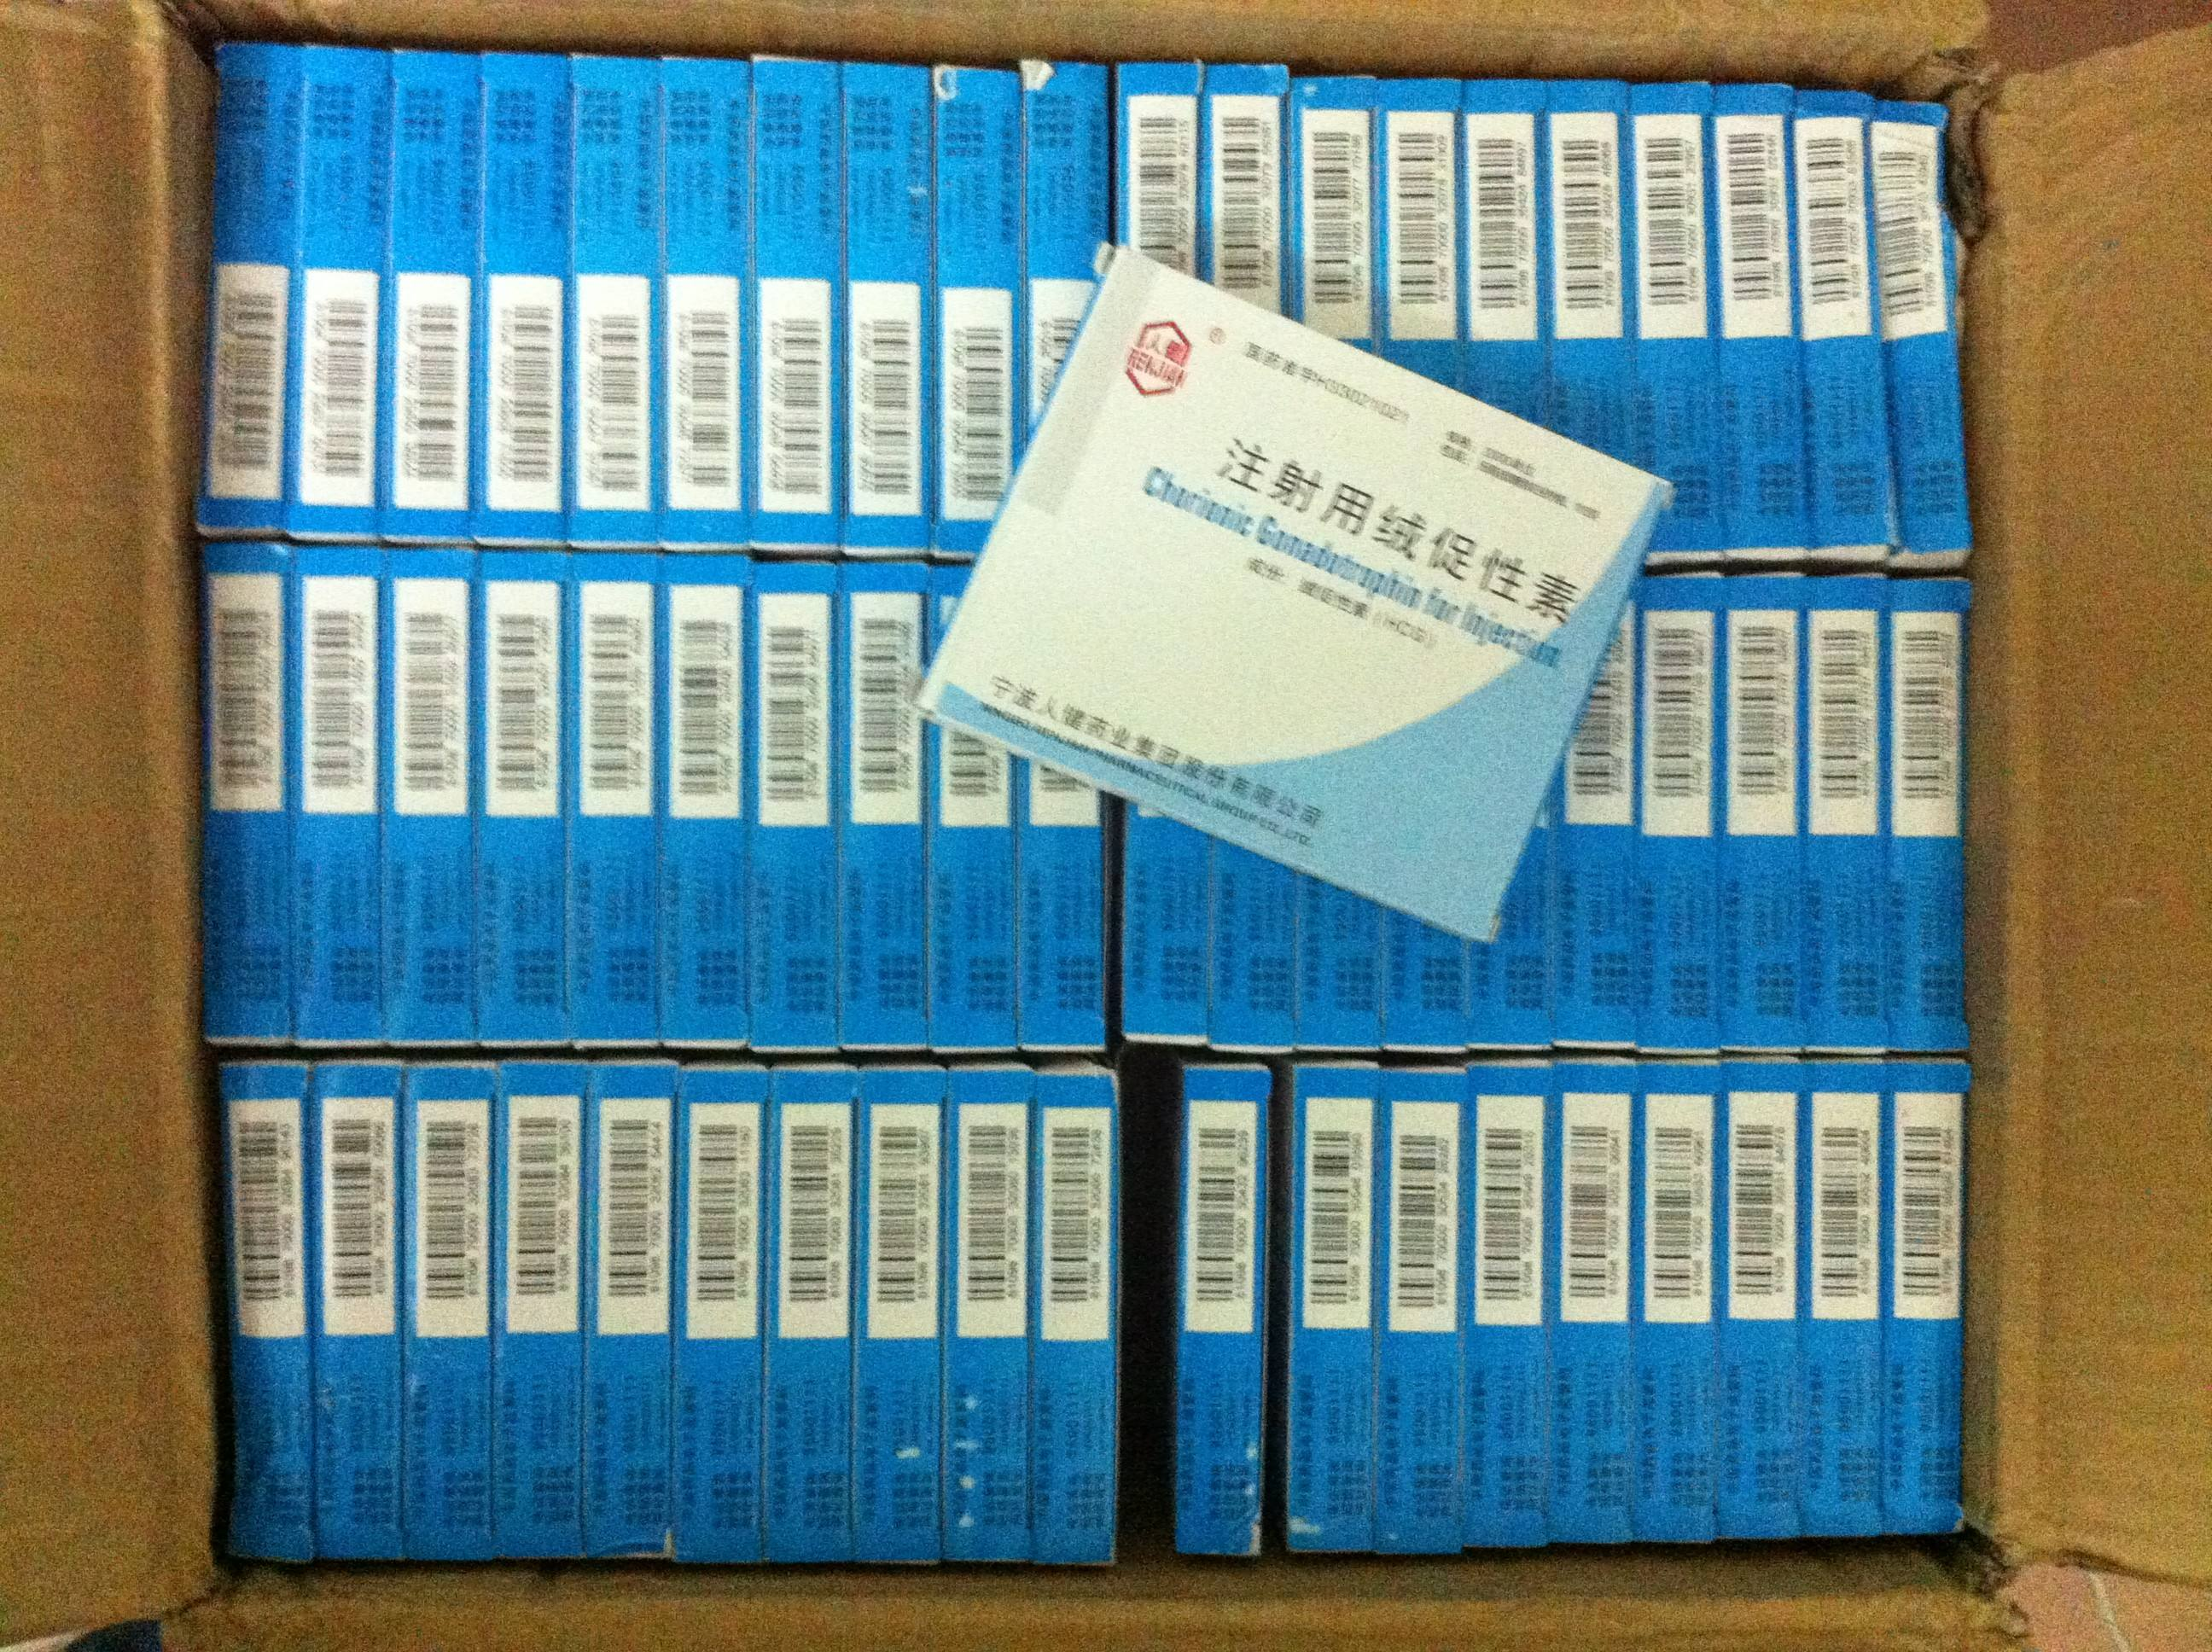 HCG 2000IU10 (Chorionic Gonadotrophin for injection) for injection